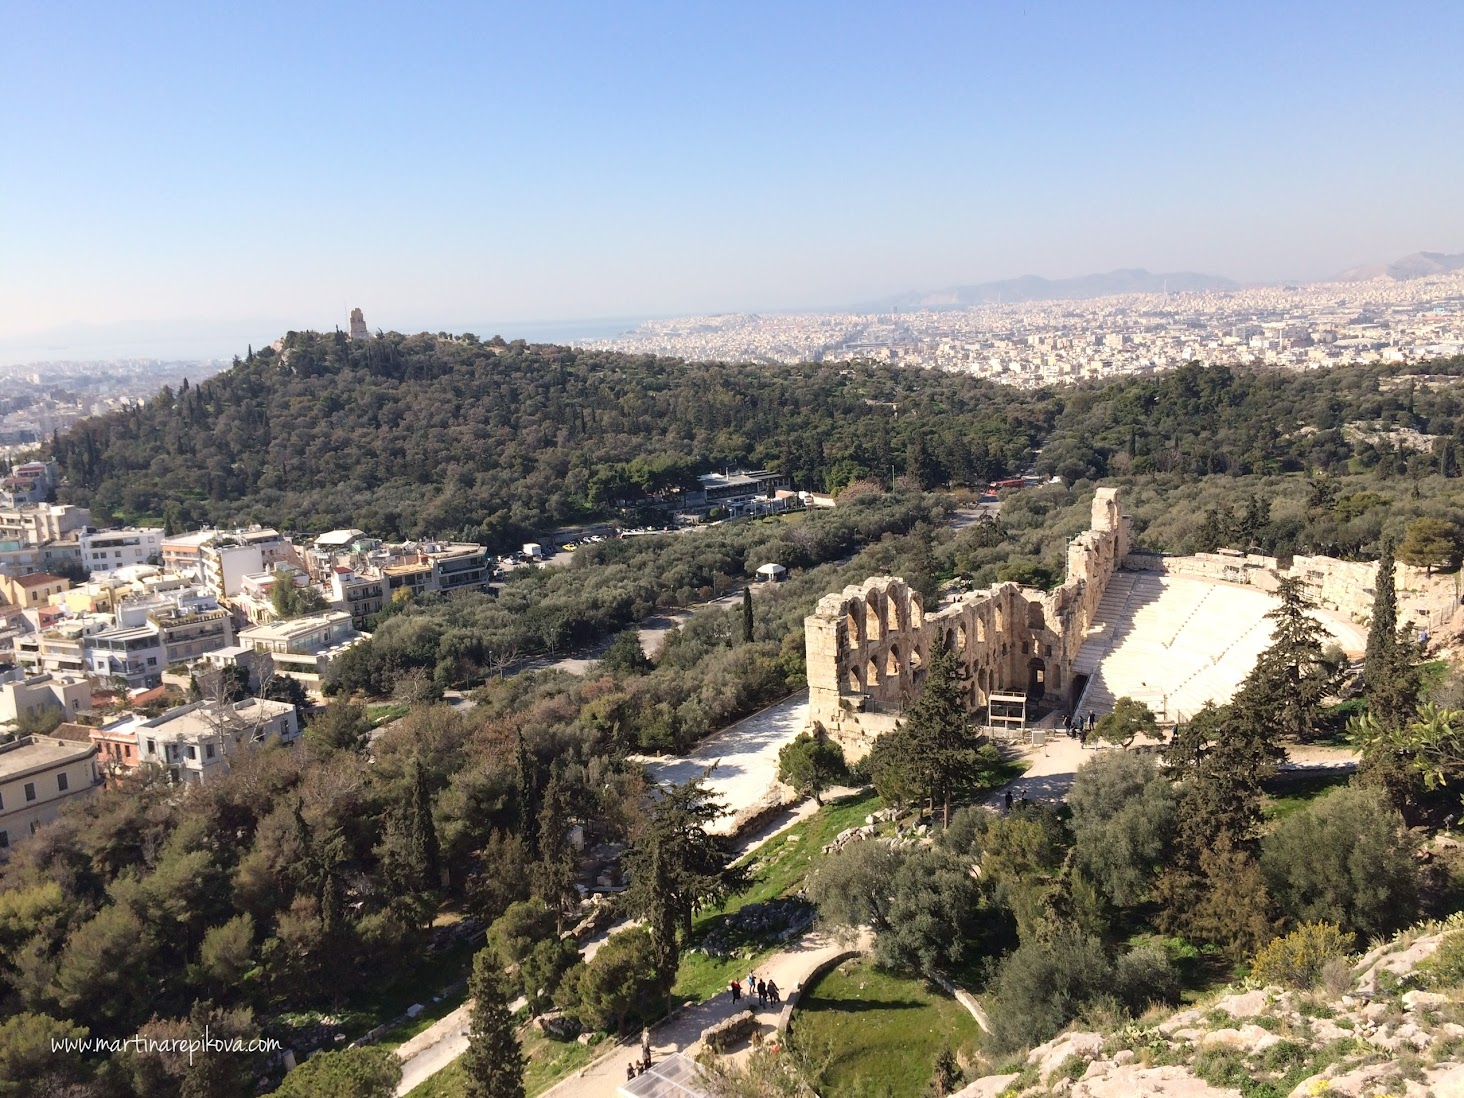 Filopappou hill with a monument at the top (left), Odeon Herodes Atticus (front), Athens, Greece